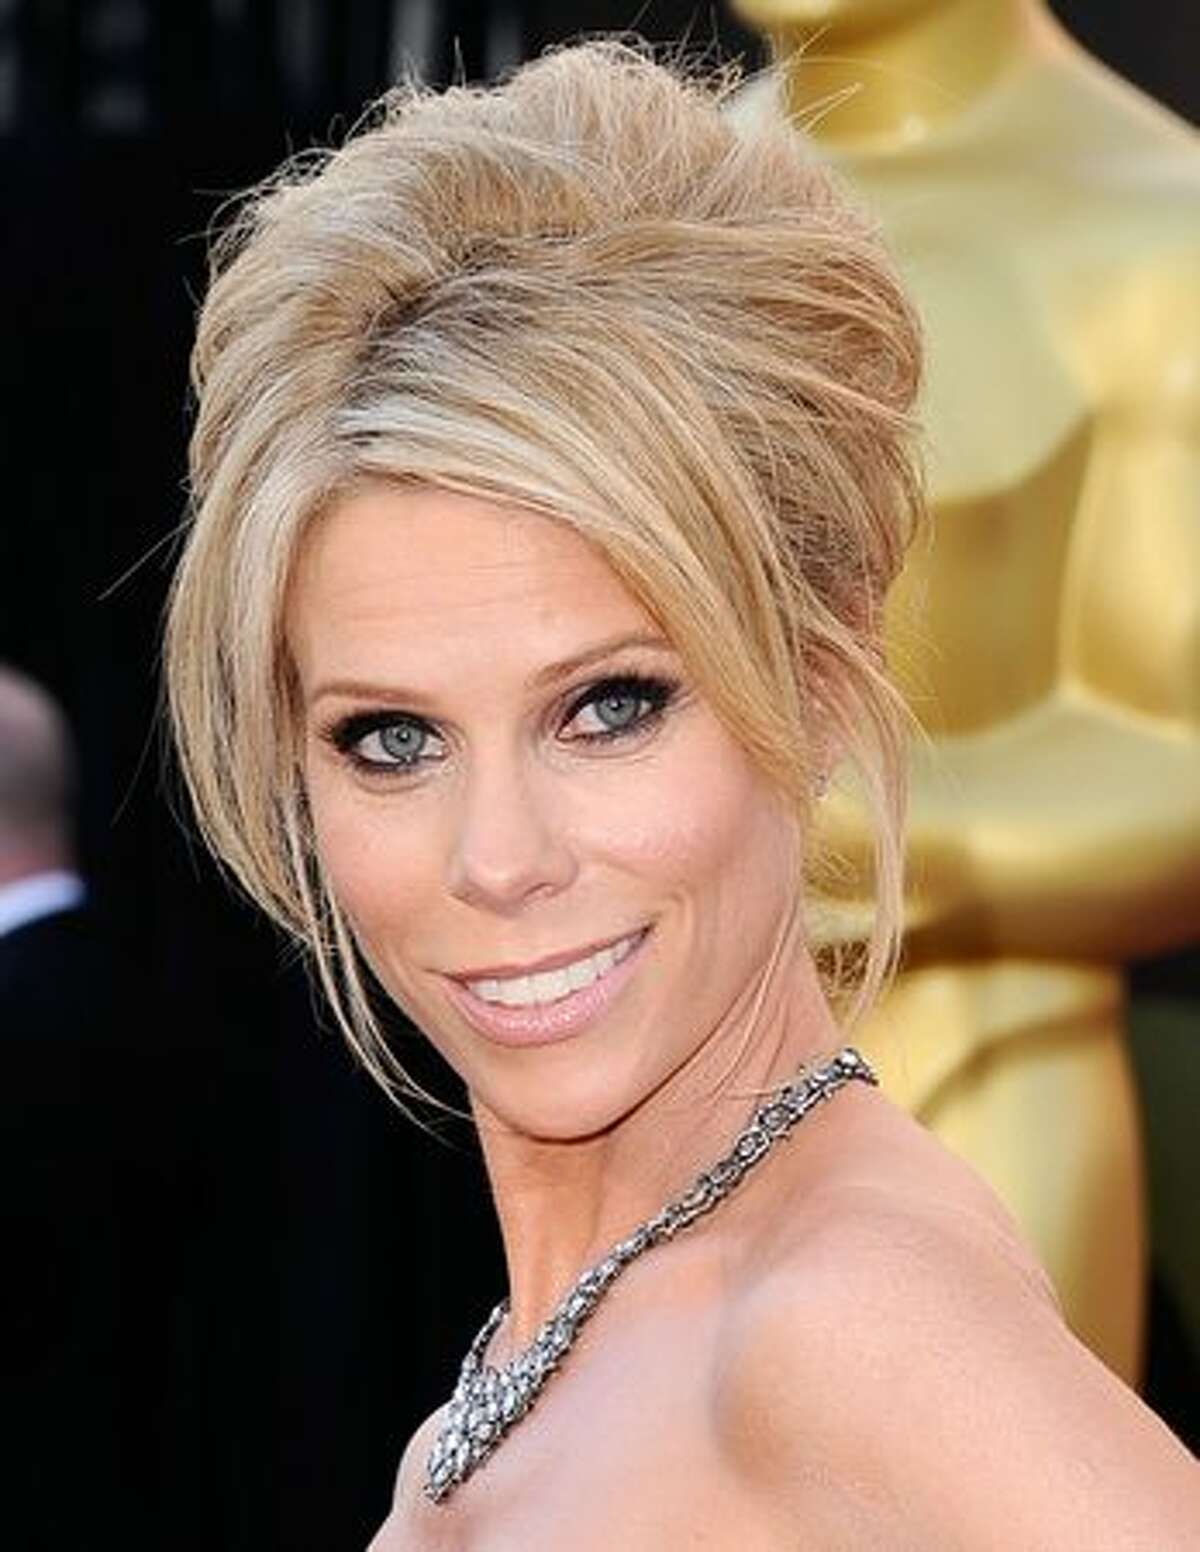 Actress Cheryl Hines arrives at the 83rd Annual Academy Awards held at the Kodak Theatre in Hollywood, California.